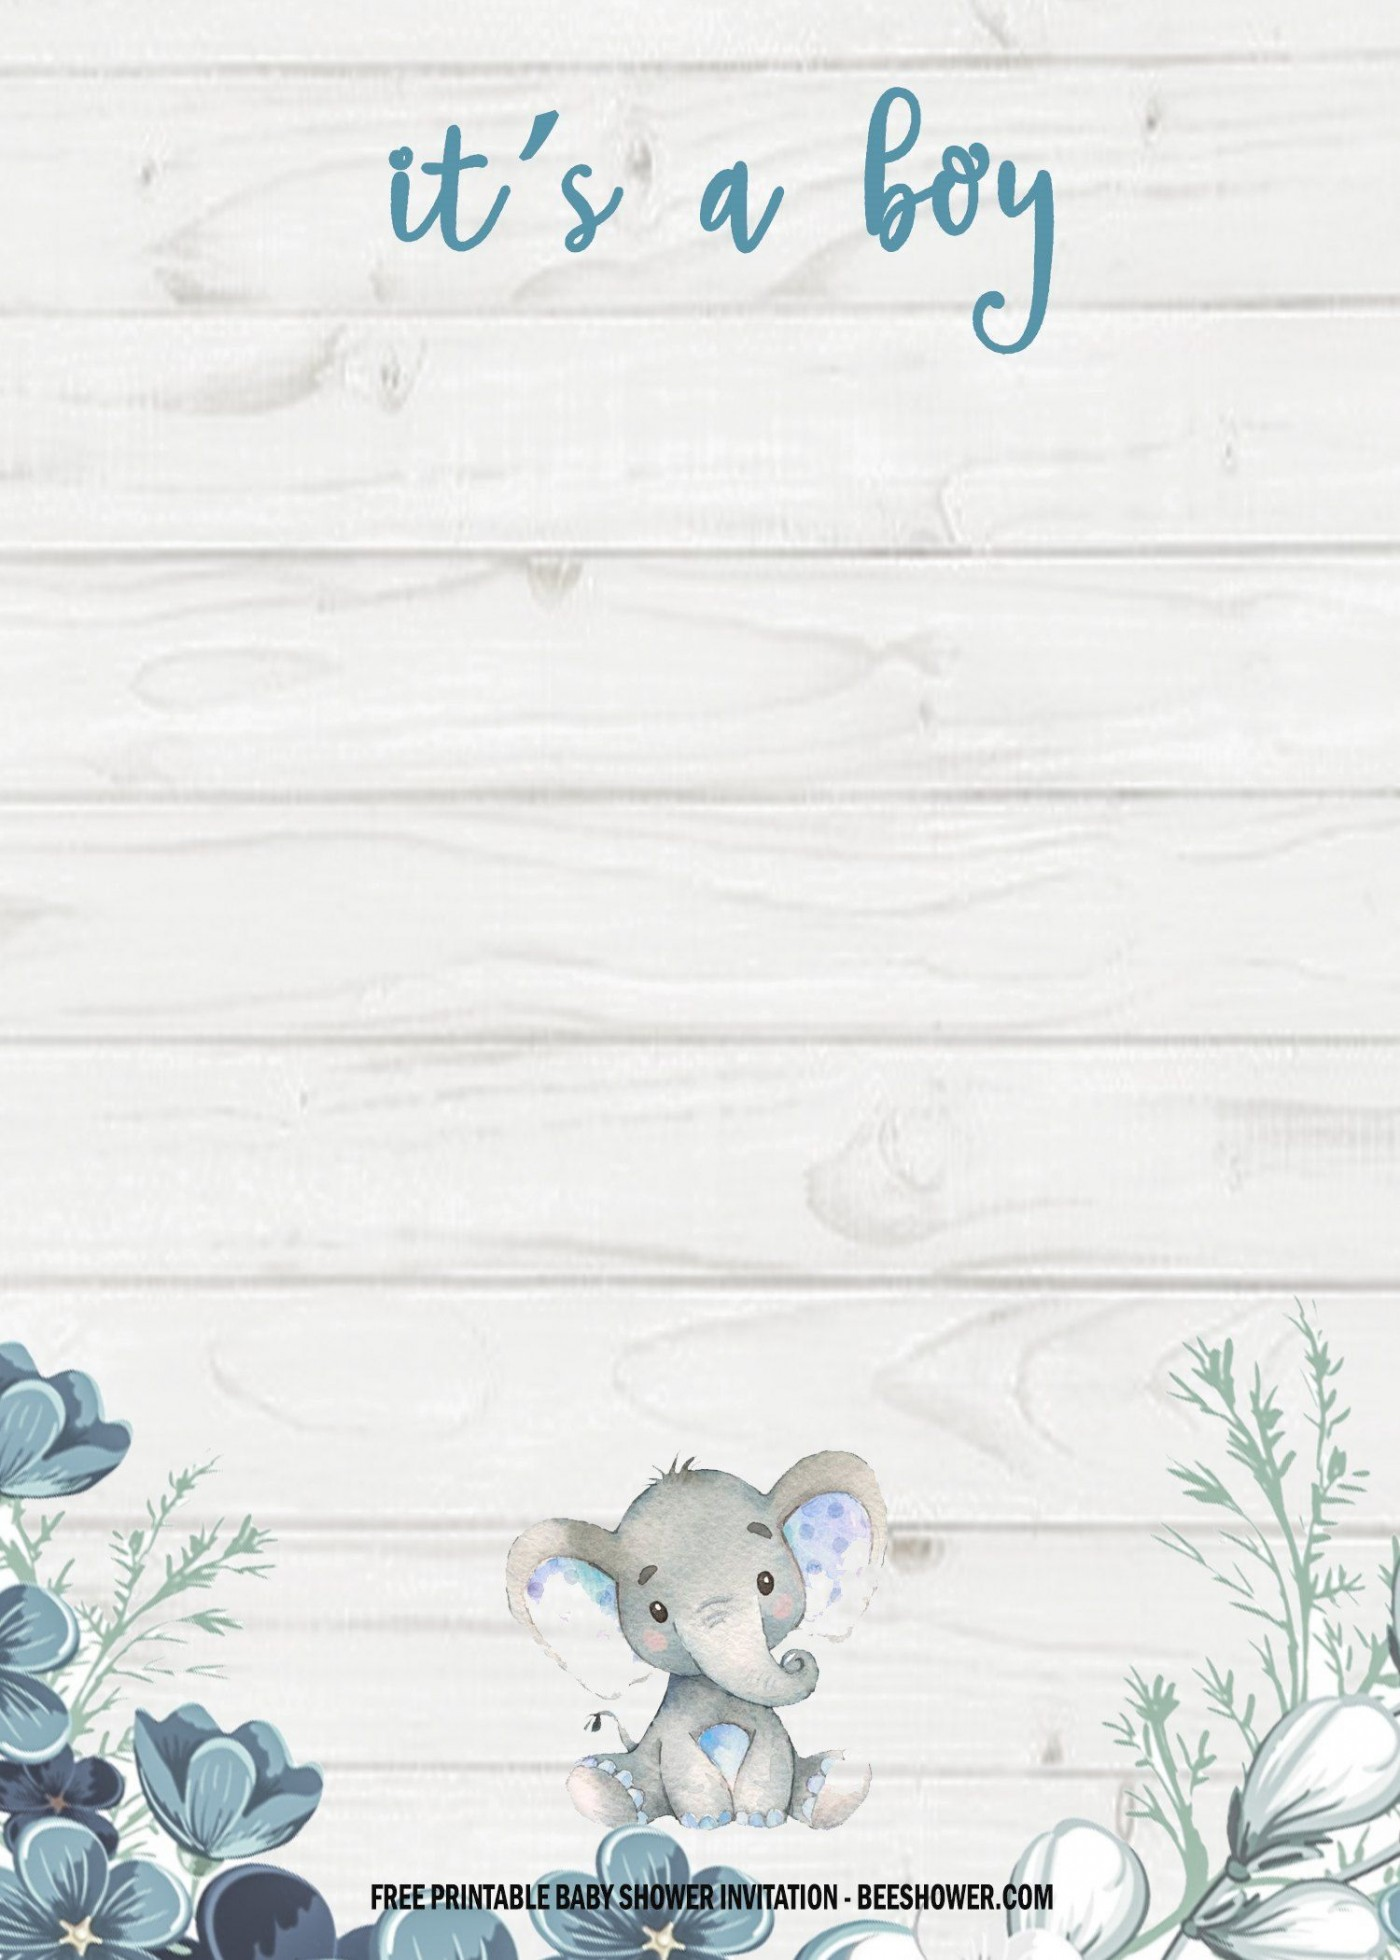 001 Awesome Baby Shower Invitation Card Template Free Download High Resolution  Indian1400